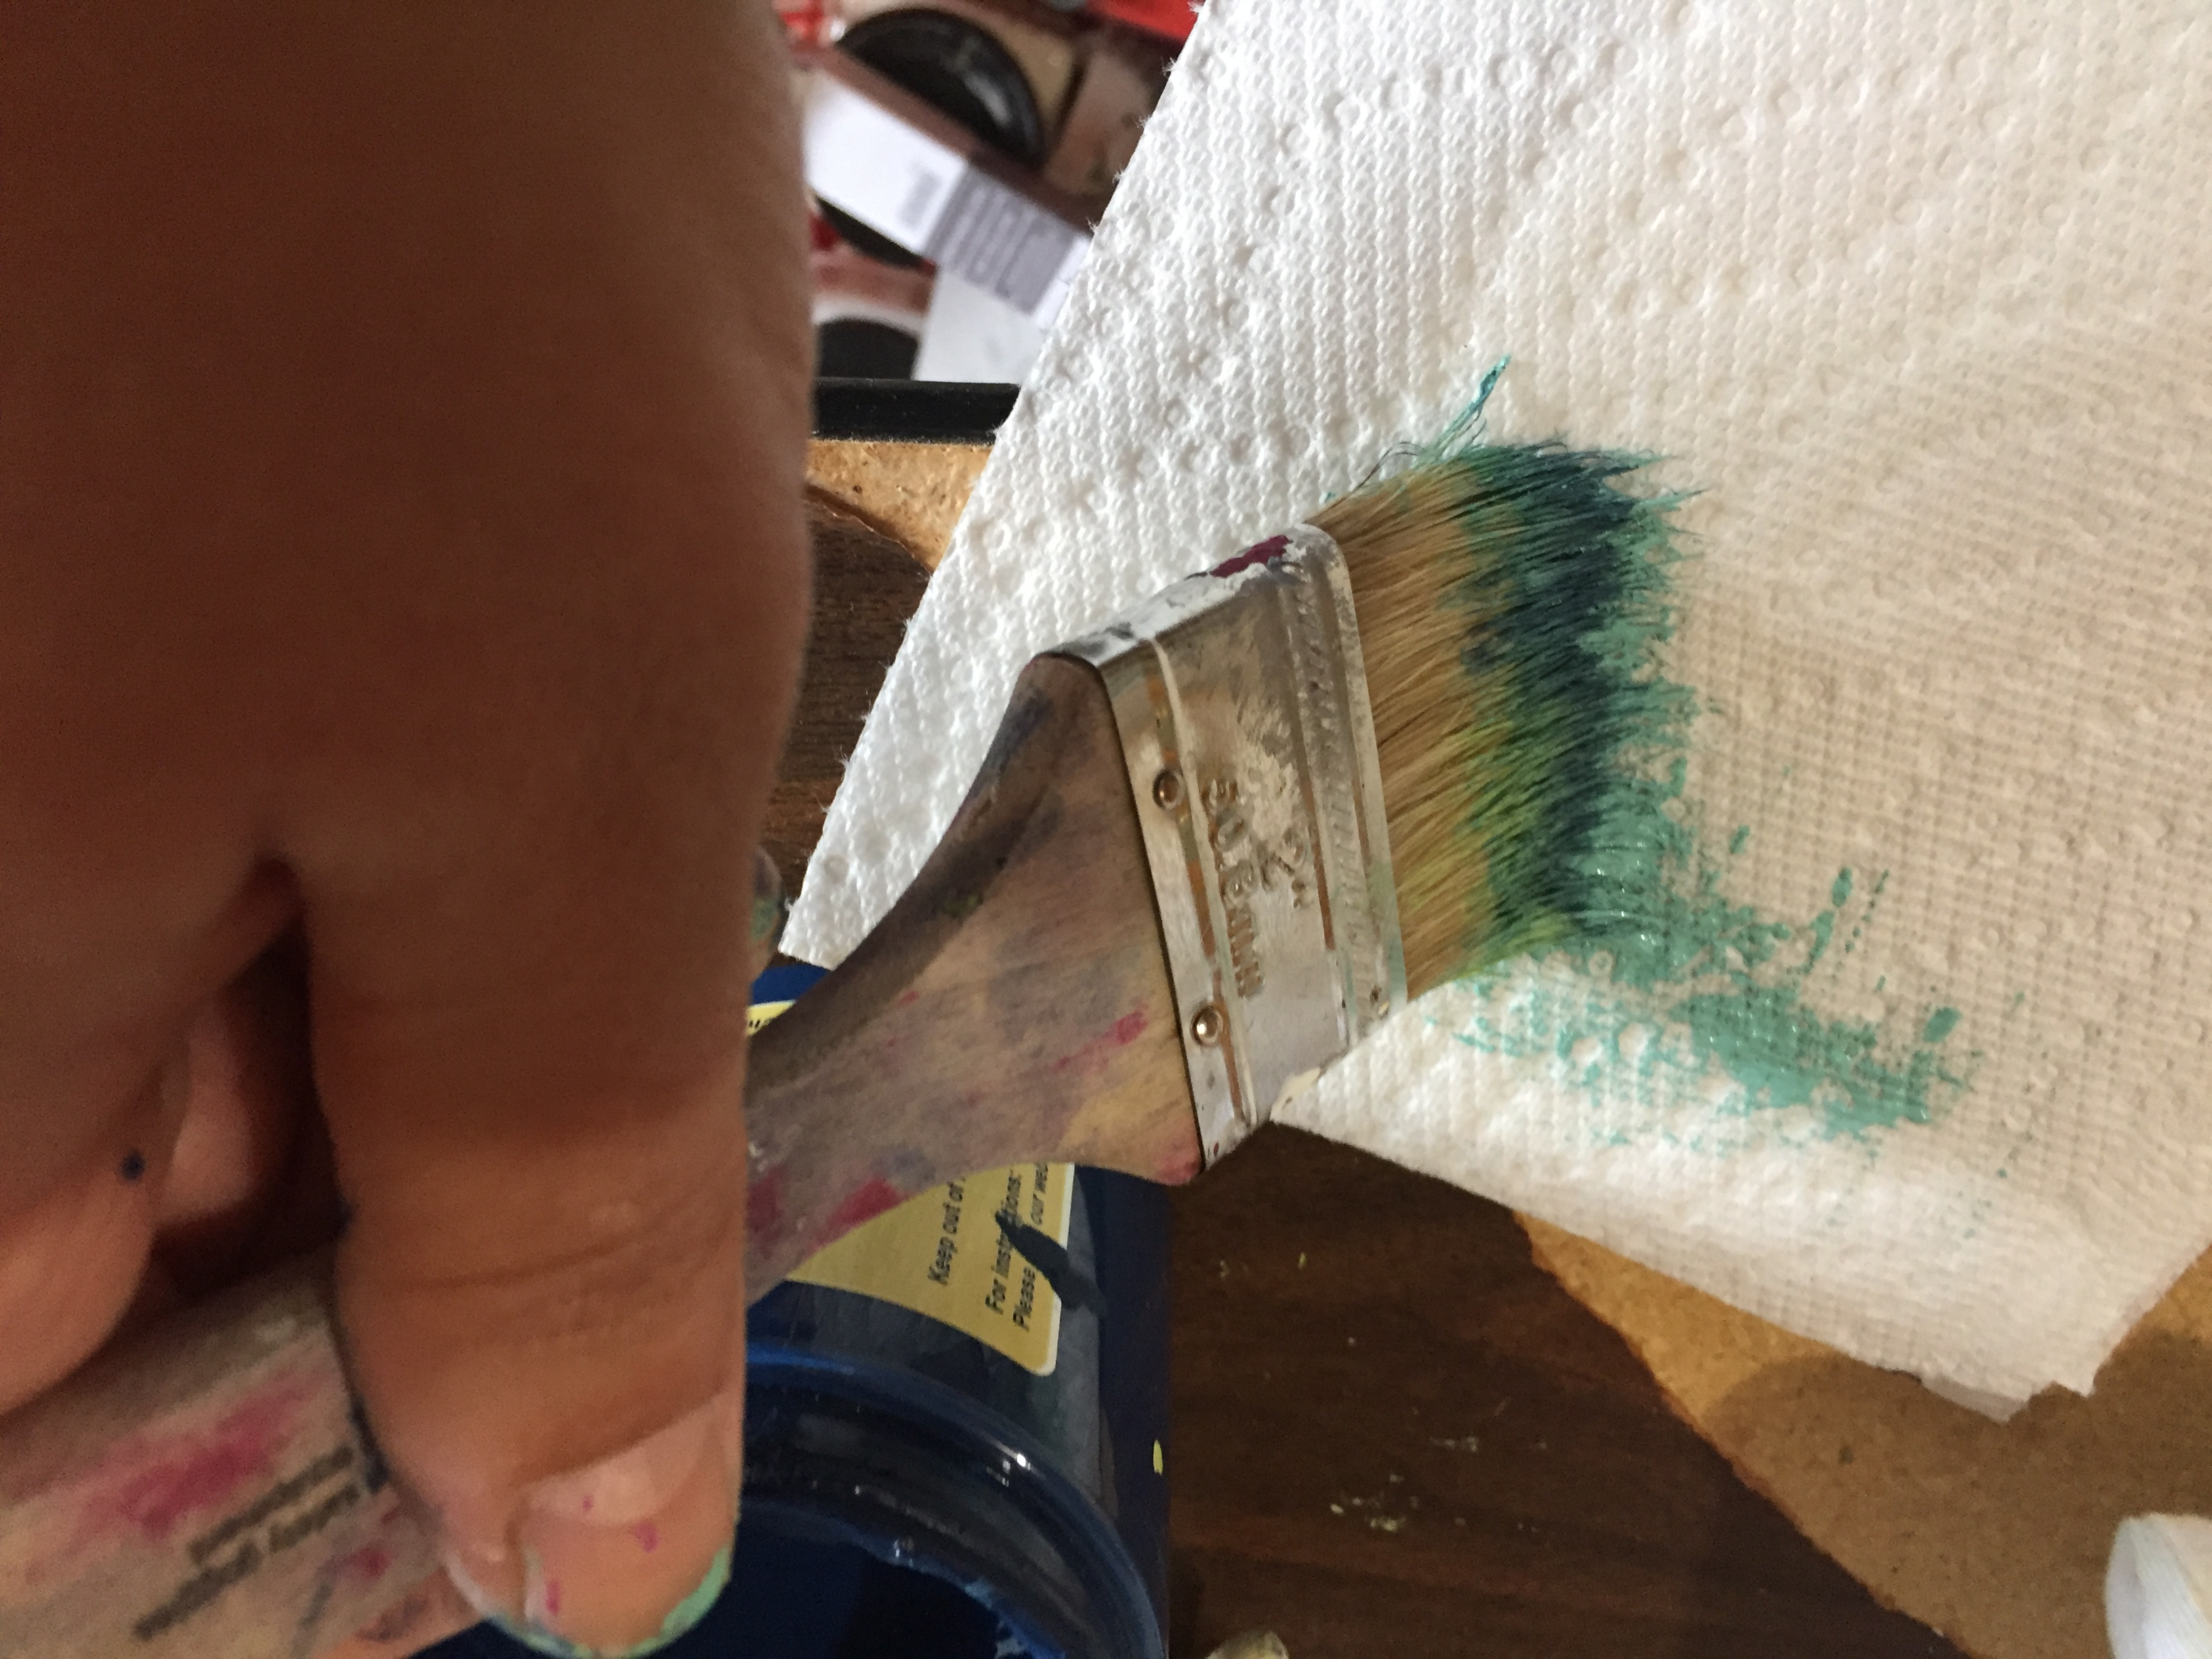 Courtney dabs the paint brush on a paper towel